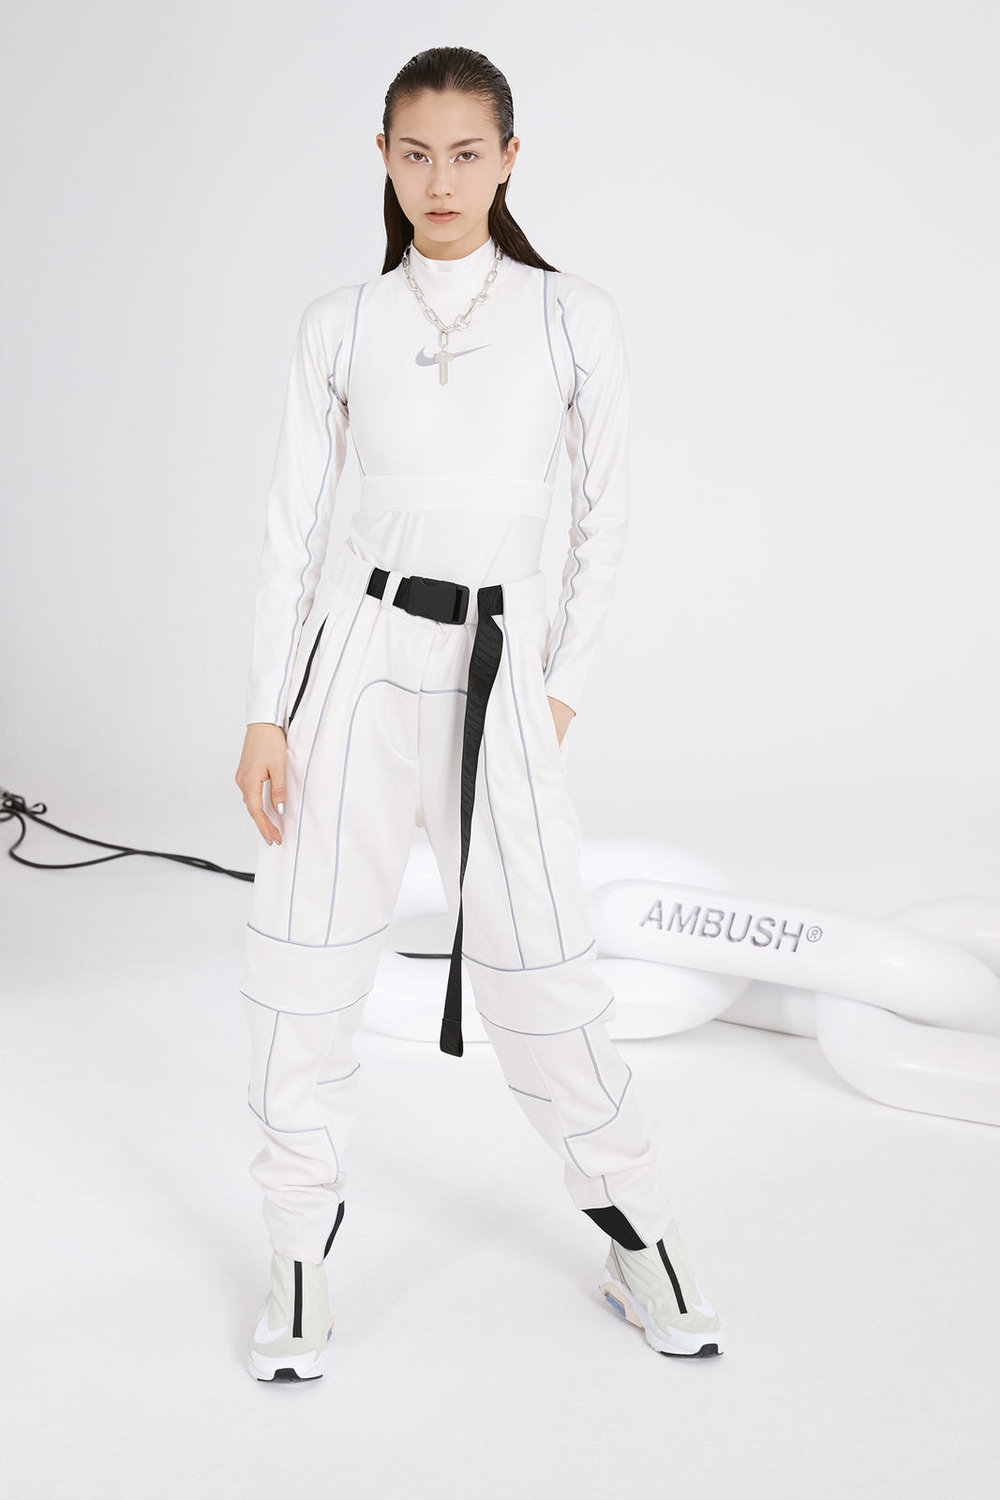 Ho18_LAB_NIKExAMBUSH_LAUREN-000006_v2_84389.jpg